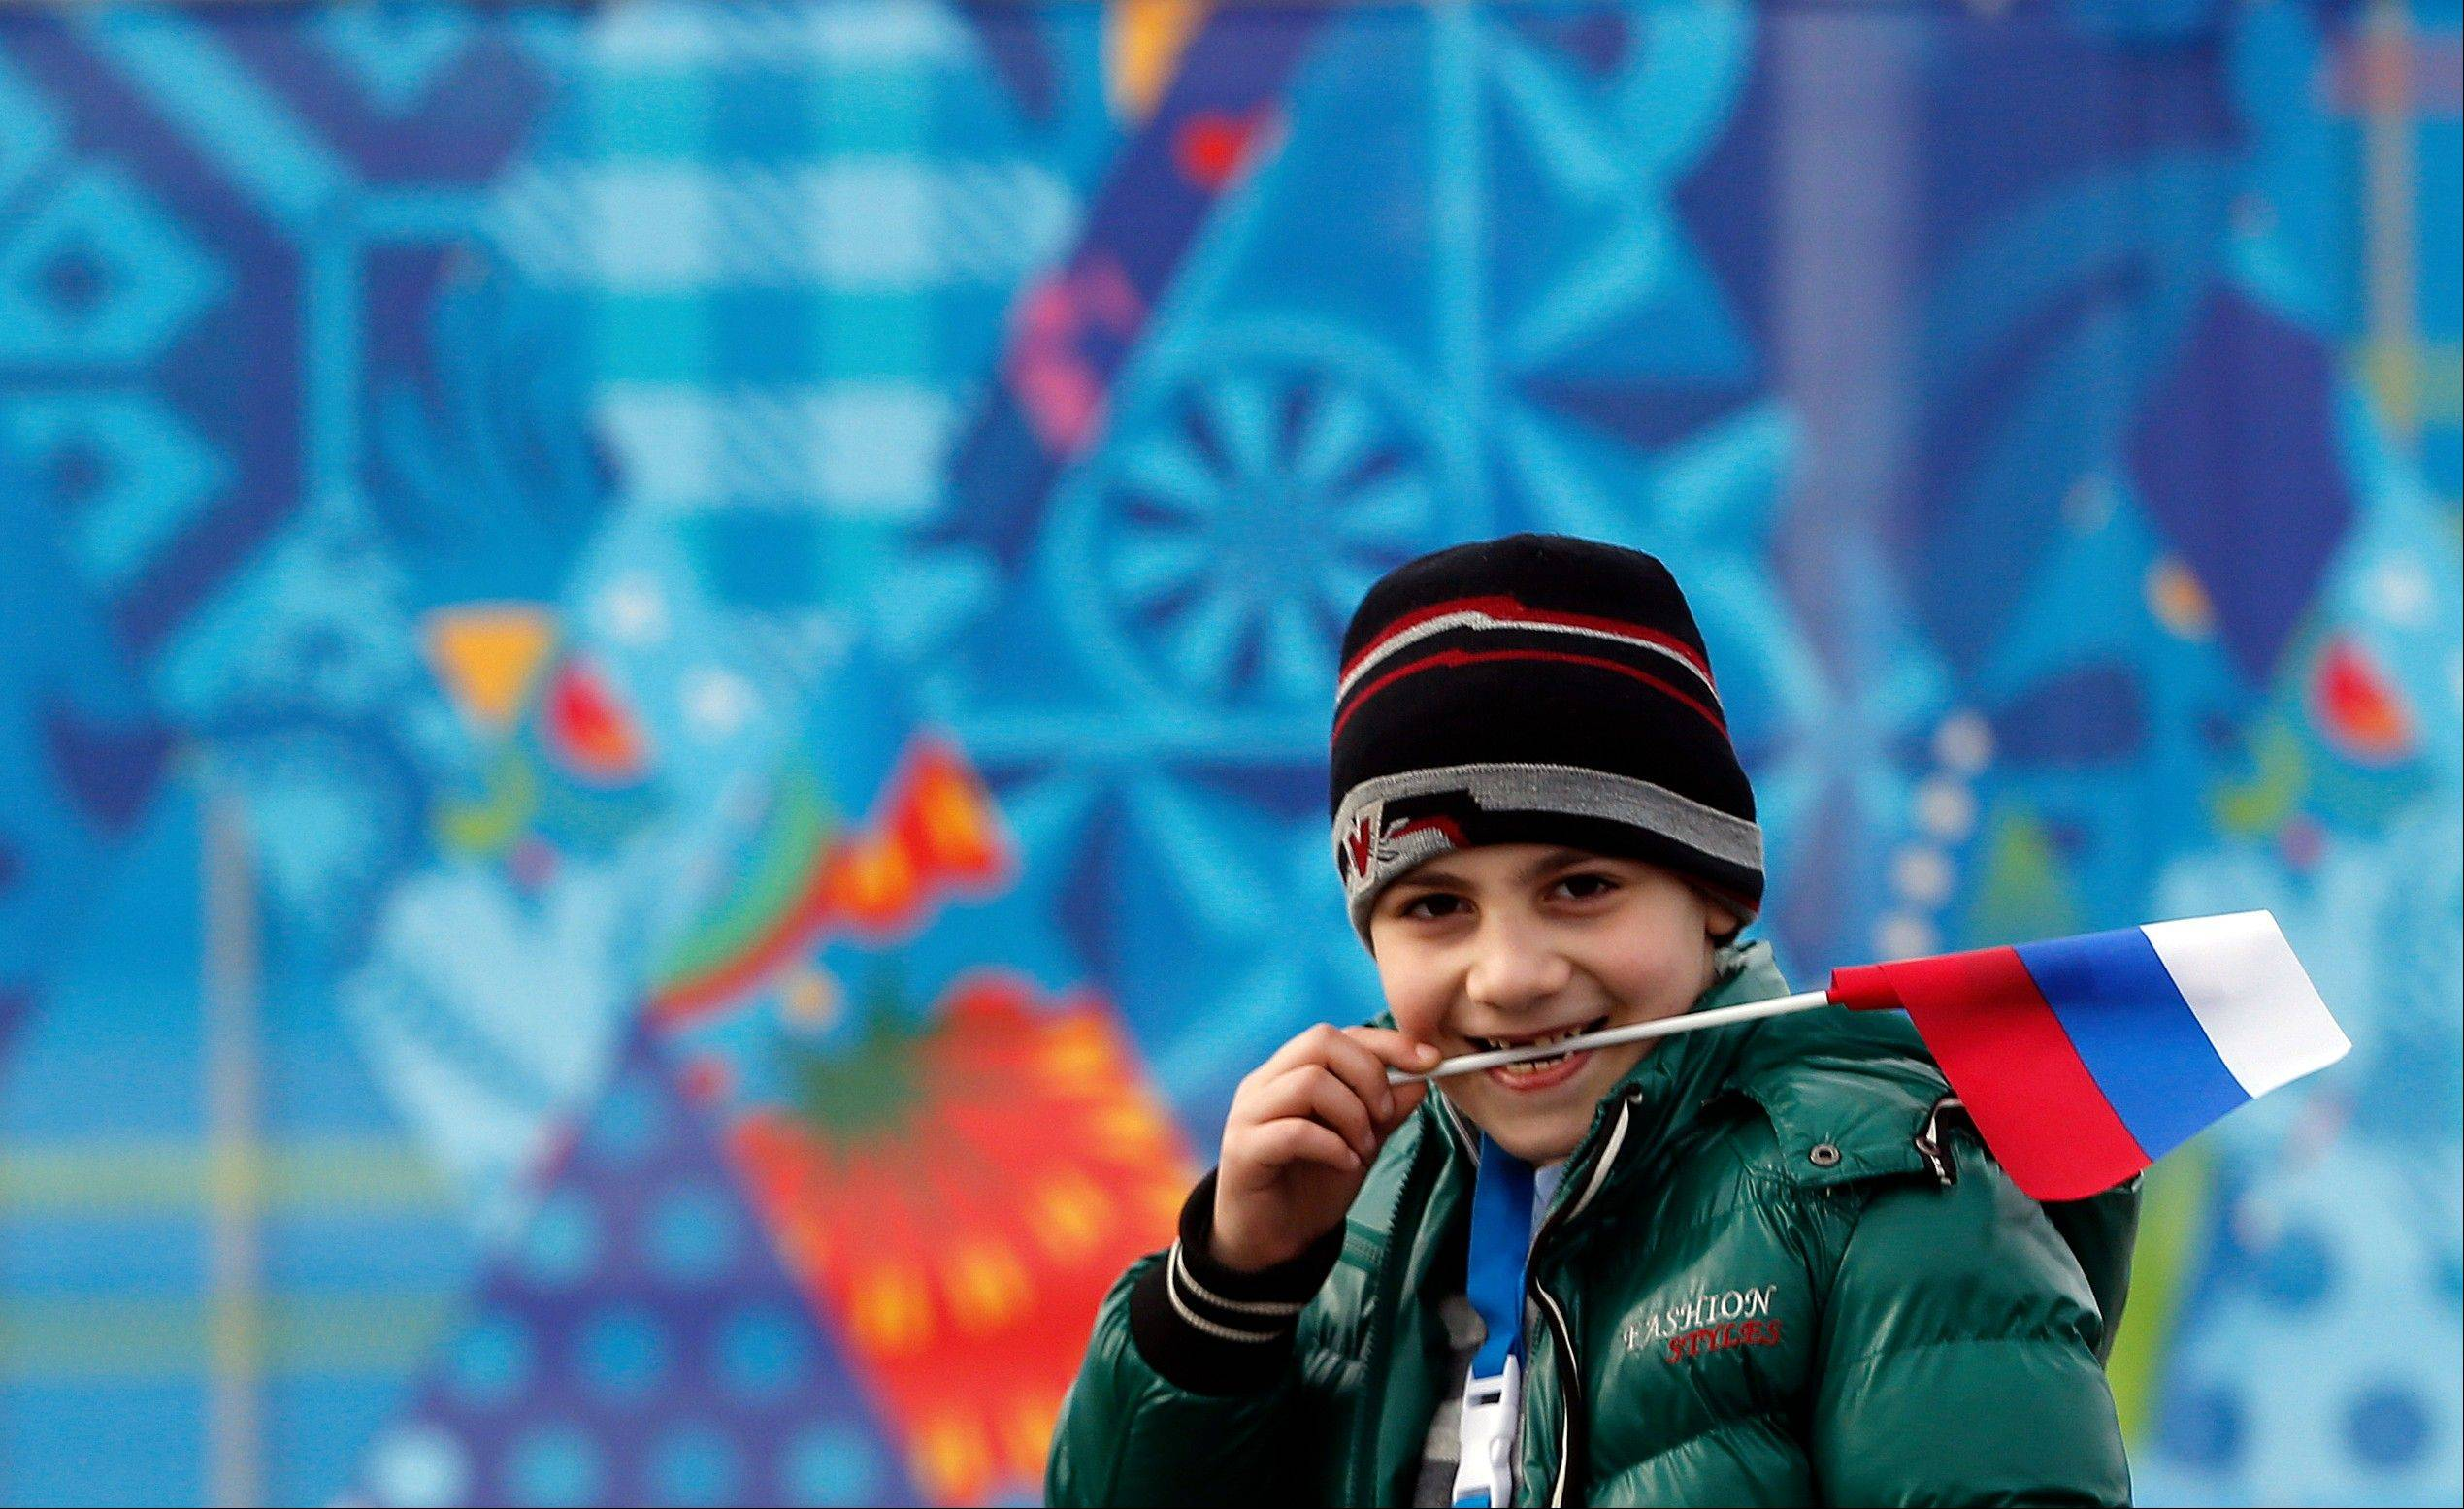 A boy holds a Russian flag in his mouth during the 2014 Winter Olympics, Sunday, Feb. 9, 2014, in Sochi, Russia.